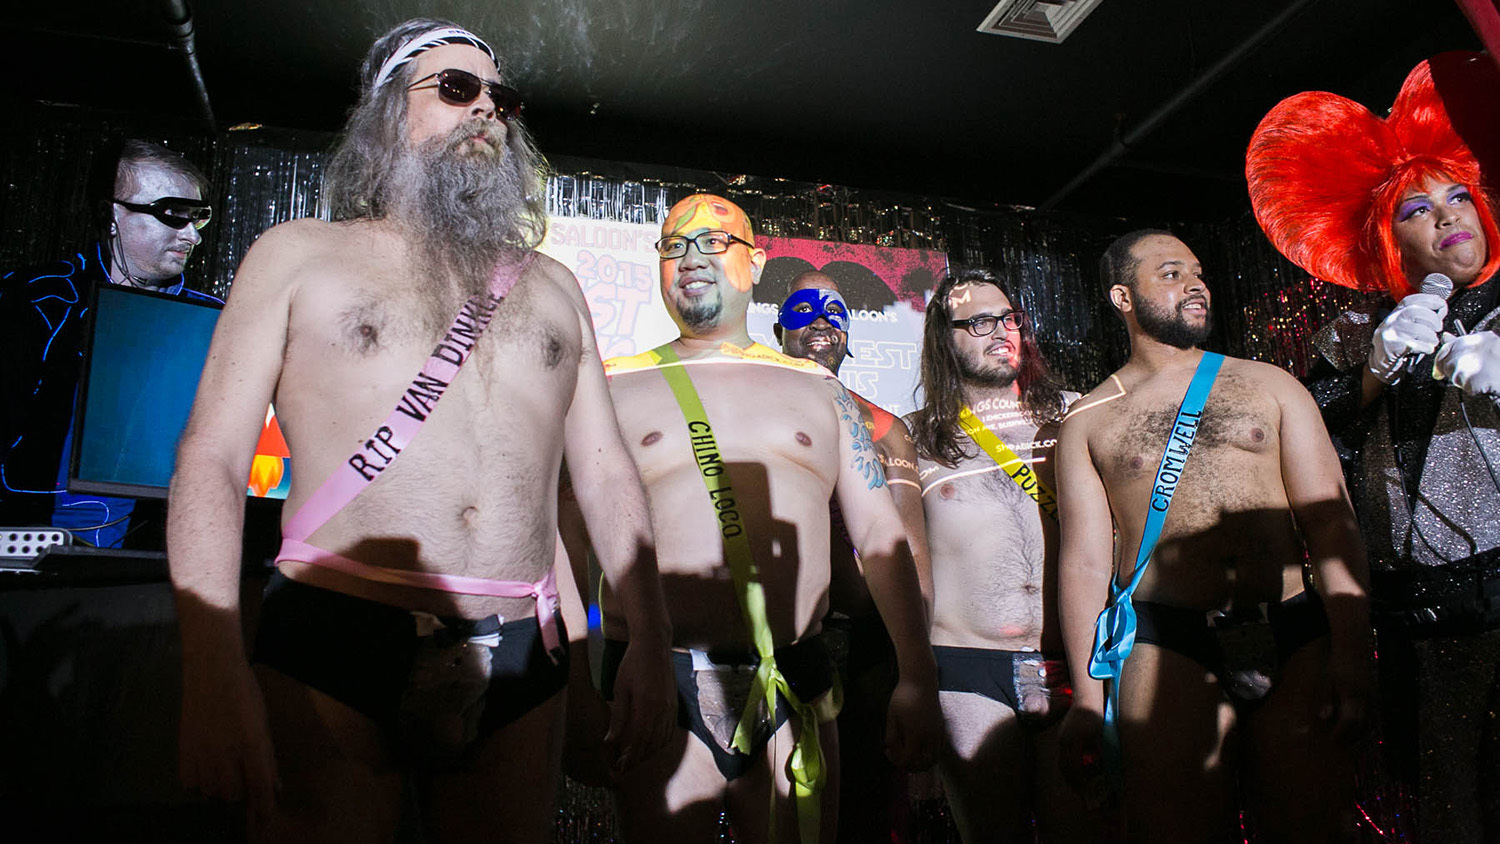 NSFW photos from the Smallest Penis in Brooklyn Pageant